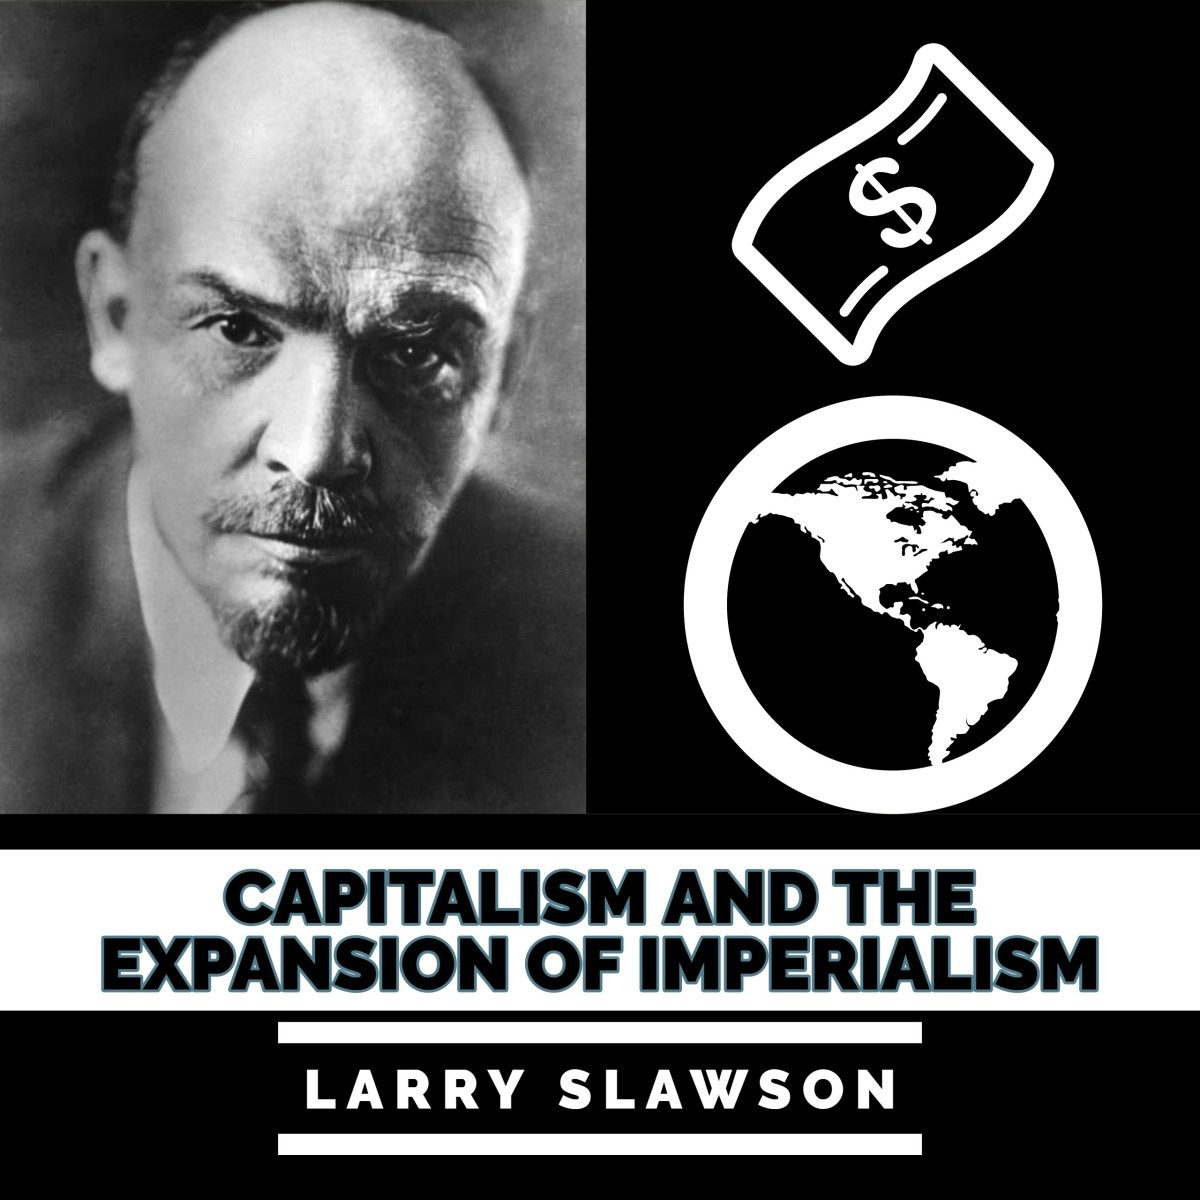 Capitalism and the Expansion of Imperialism.